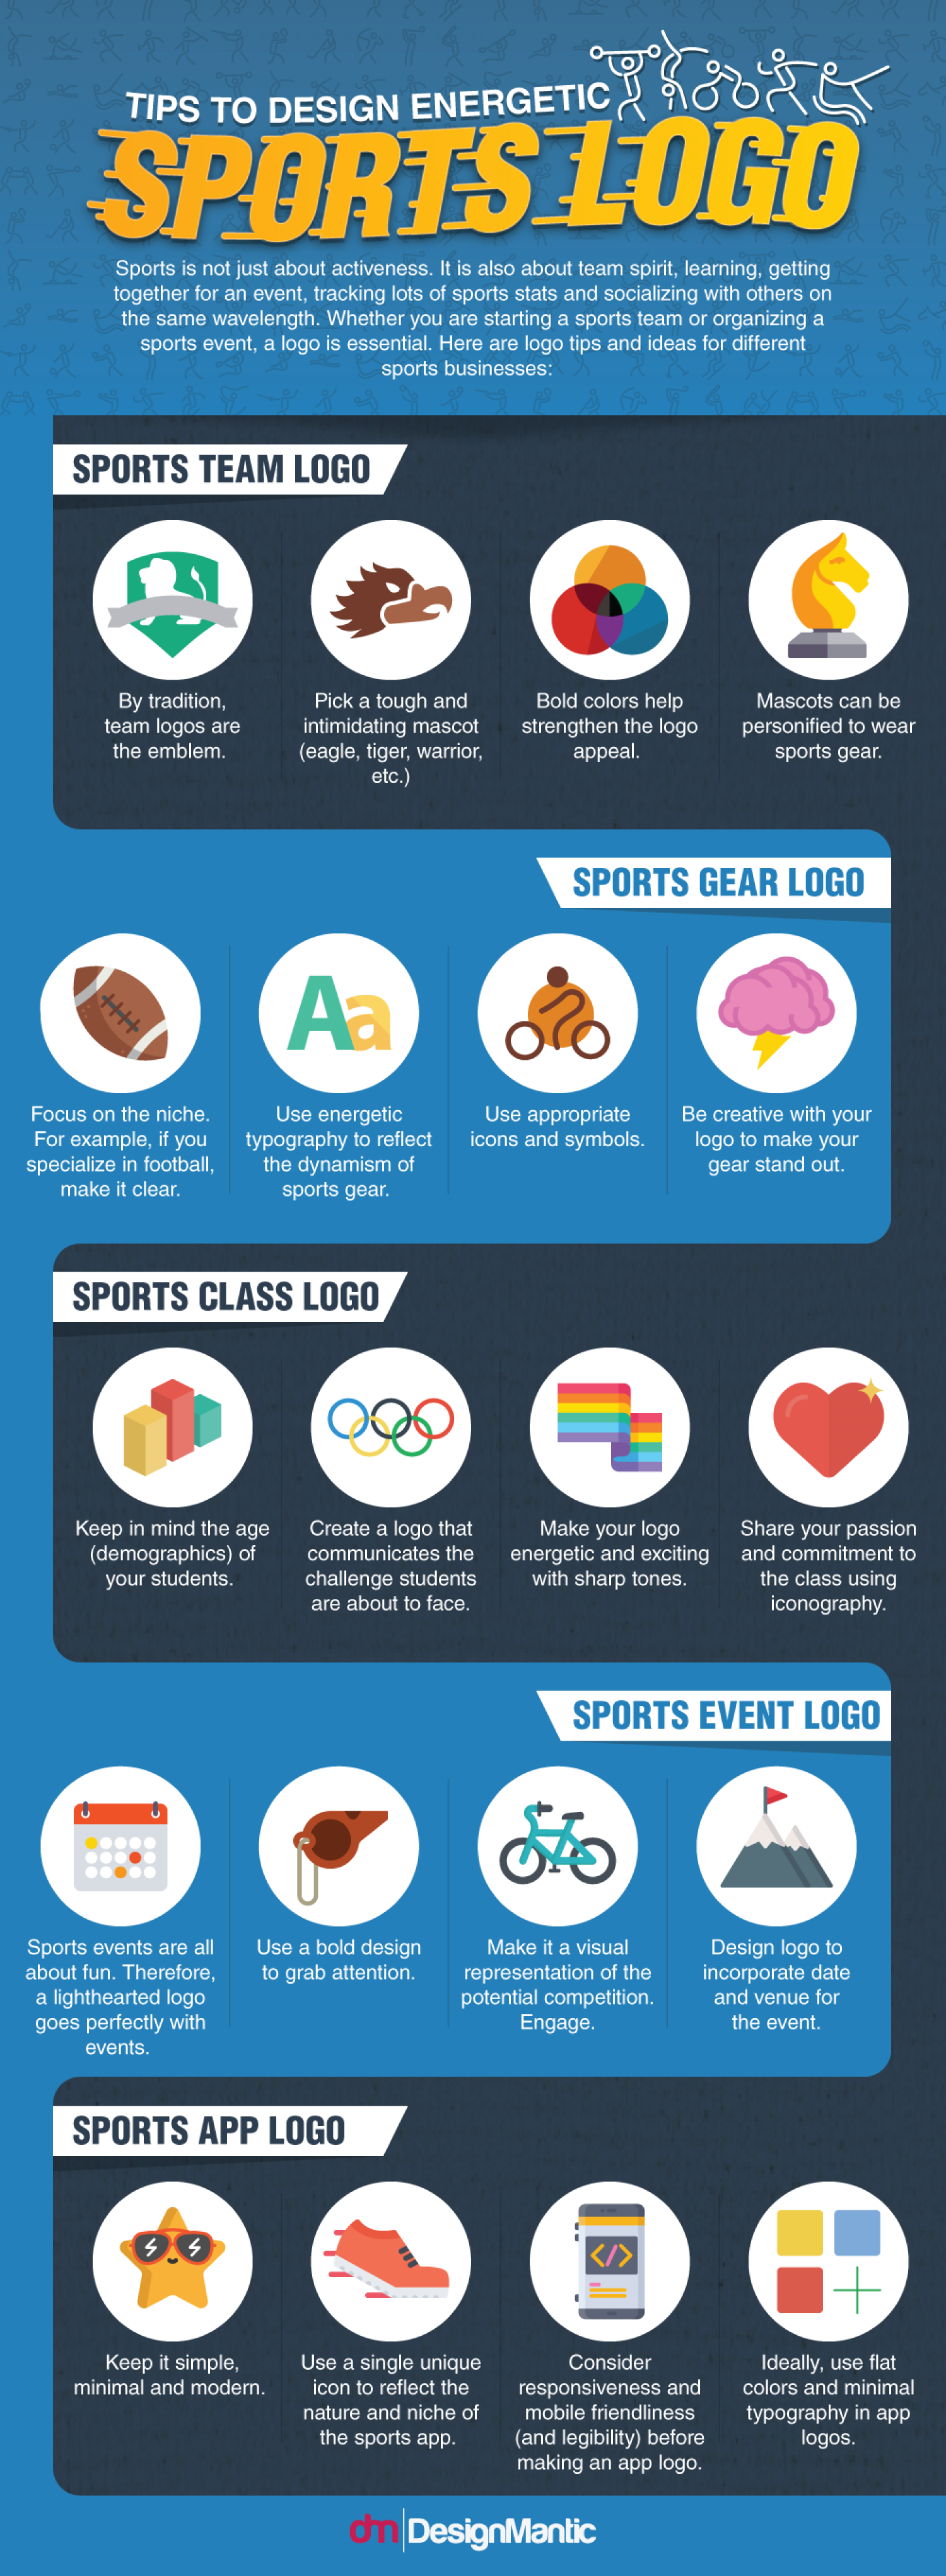 Tips To Design Energetic Sports Logo Infographic